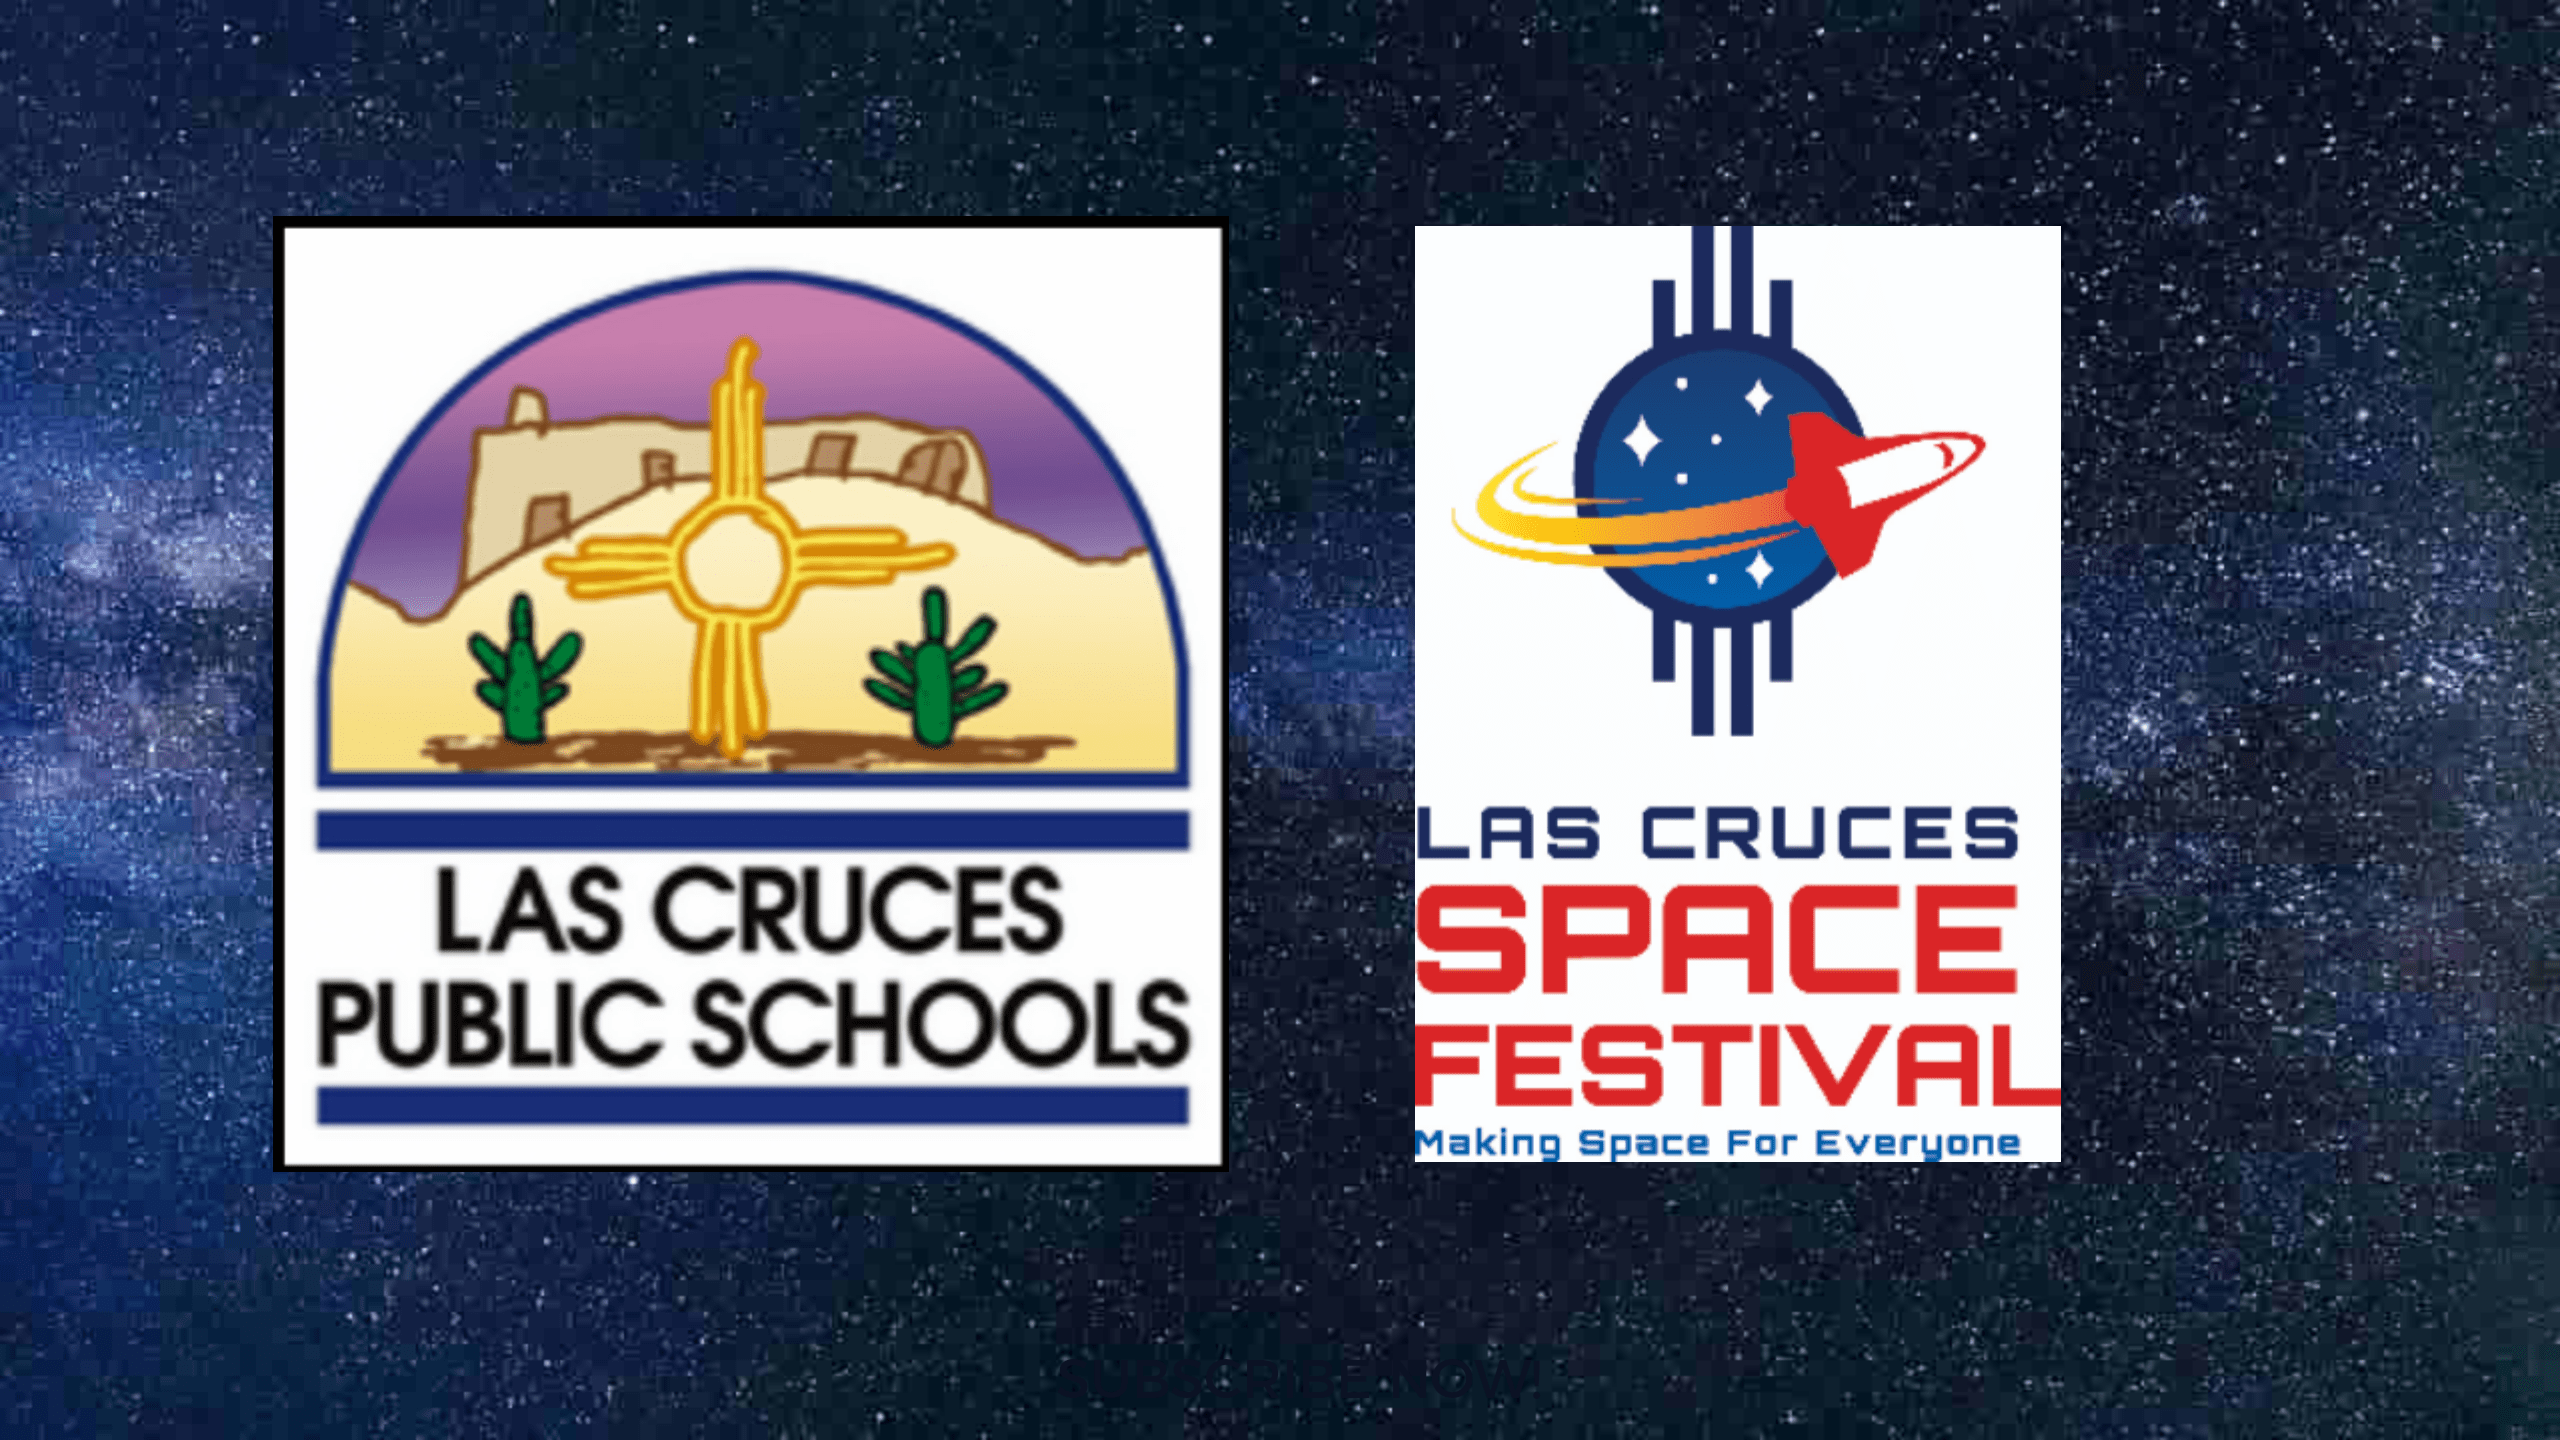 Las Cruces Space Festival Poster Contest